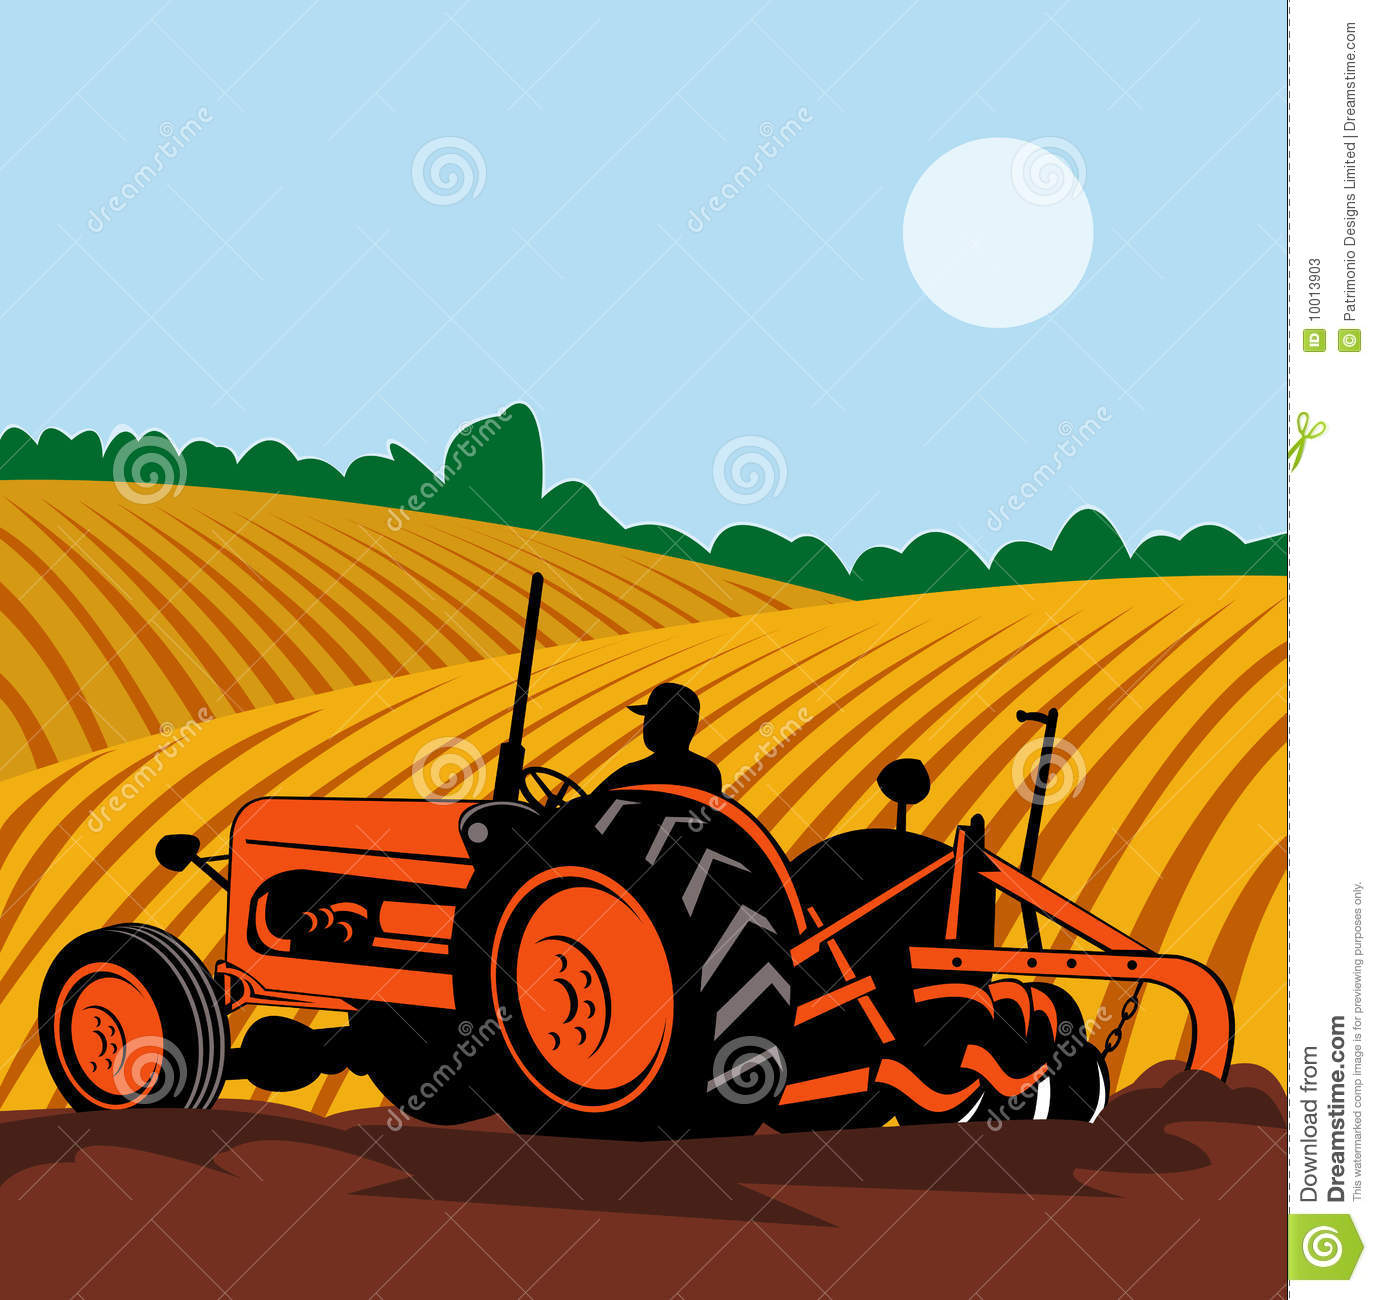 vintage tractor clipart - photo #28